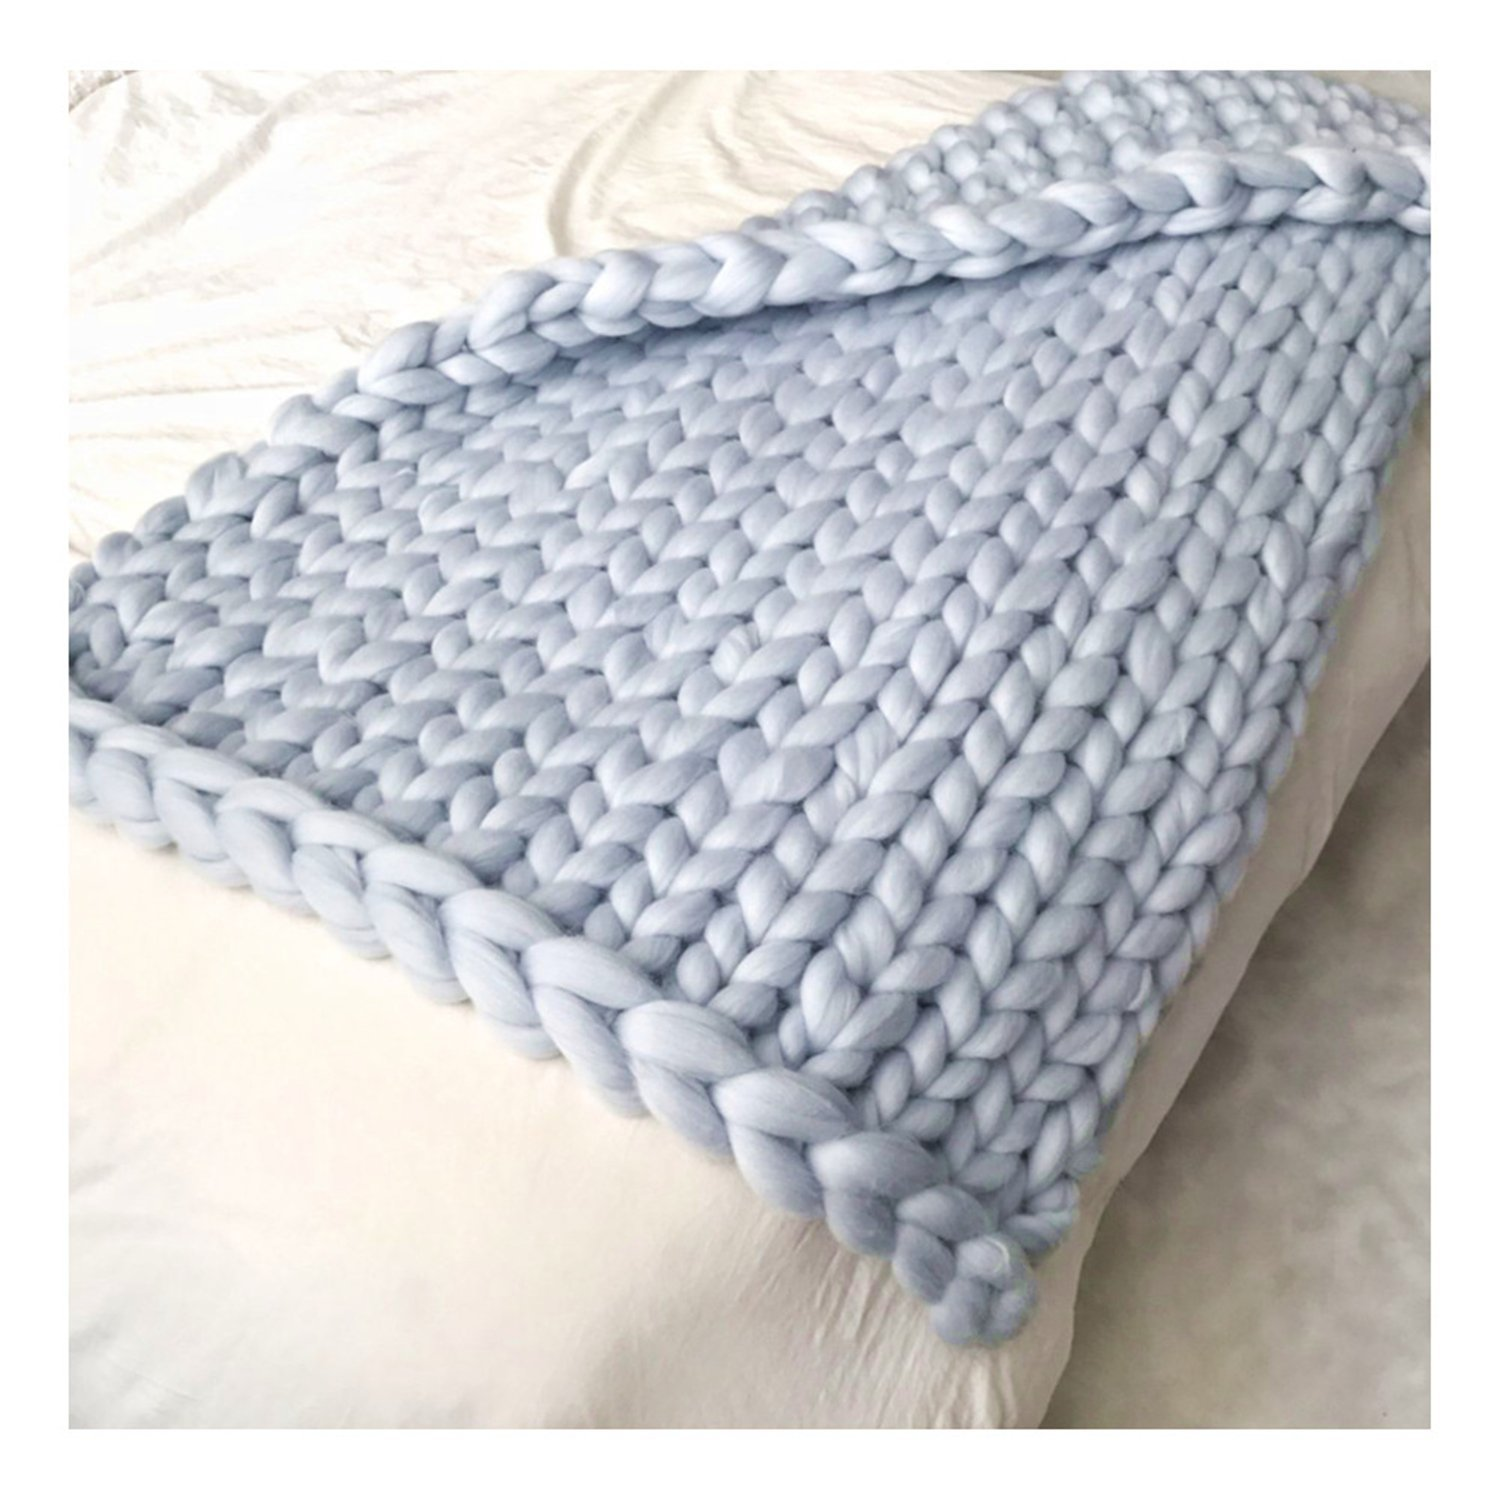 EASTSURE Knit Acrylic Blanket Hand-made Chunky Bed Sofa Throw Super Large,Grey,47''x71'' by EASTSURE (Image #5)